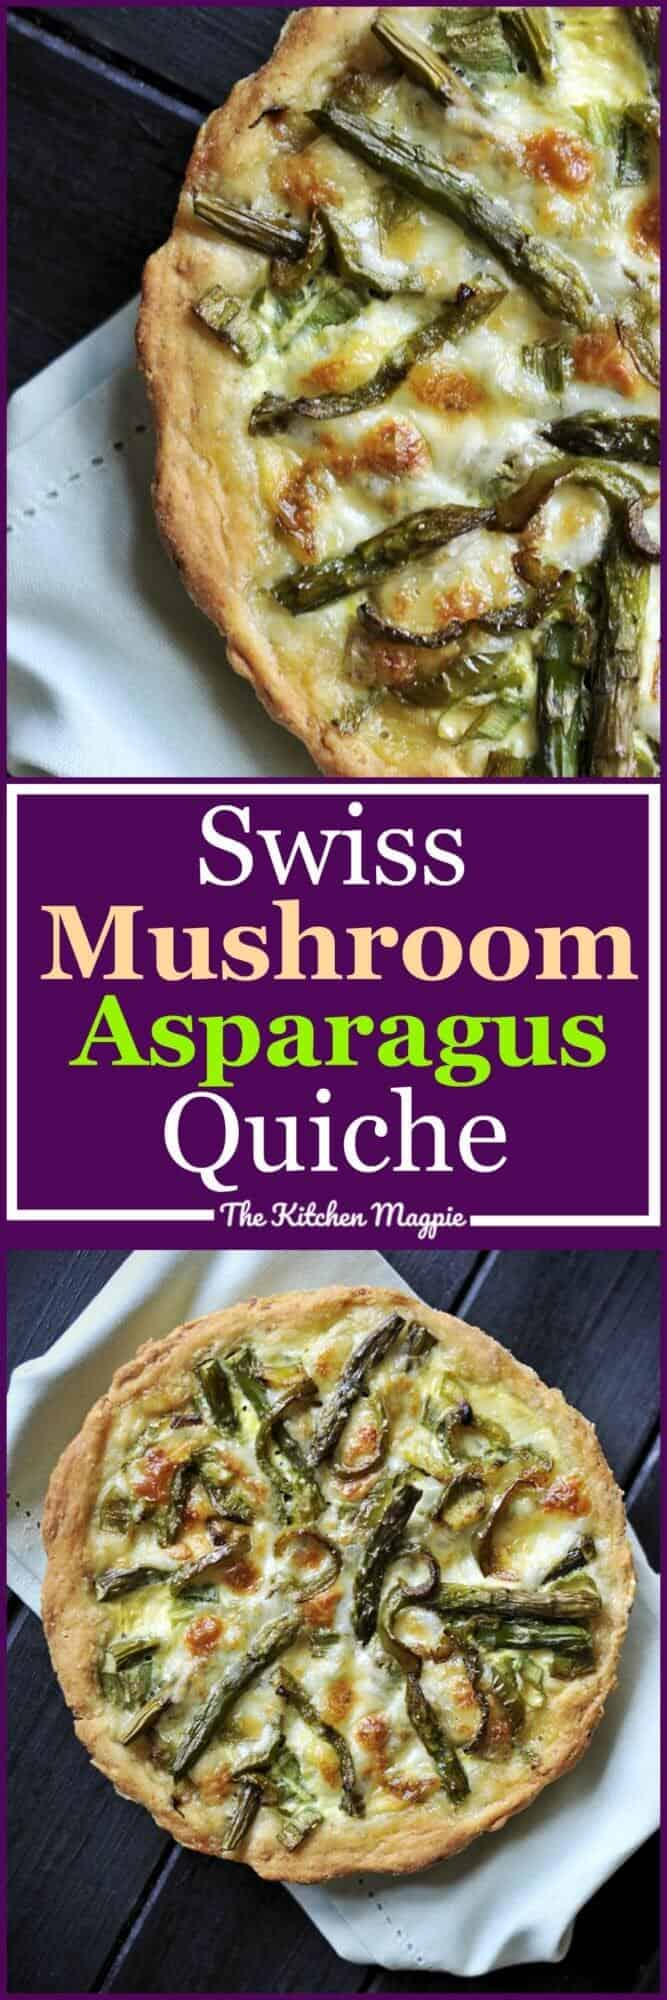 Delicious home madeSwiss Mushroom Asparagus Quiche for brunch is always a good idea! #breakfast #quiche #mushroom #asparagus #eggs #brunch #recipe